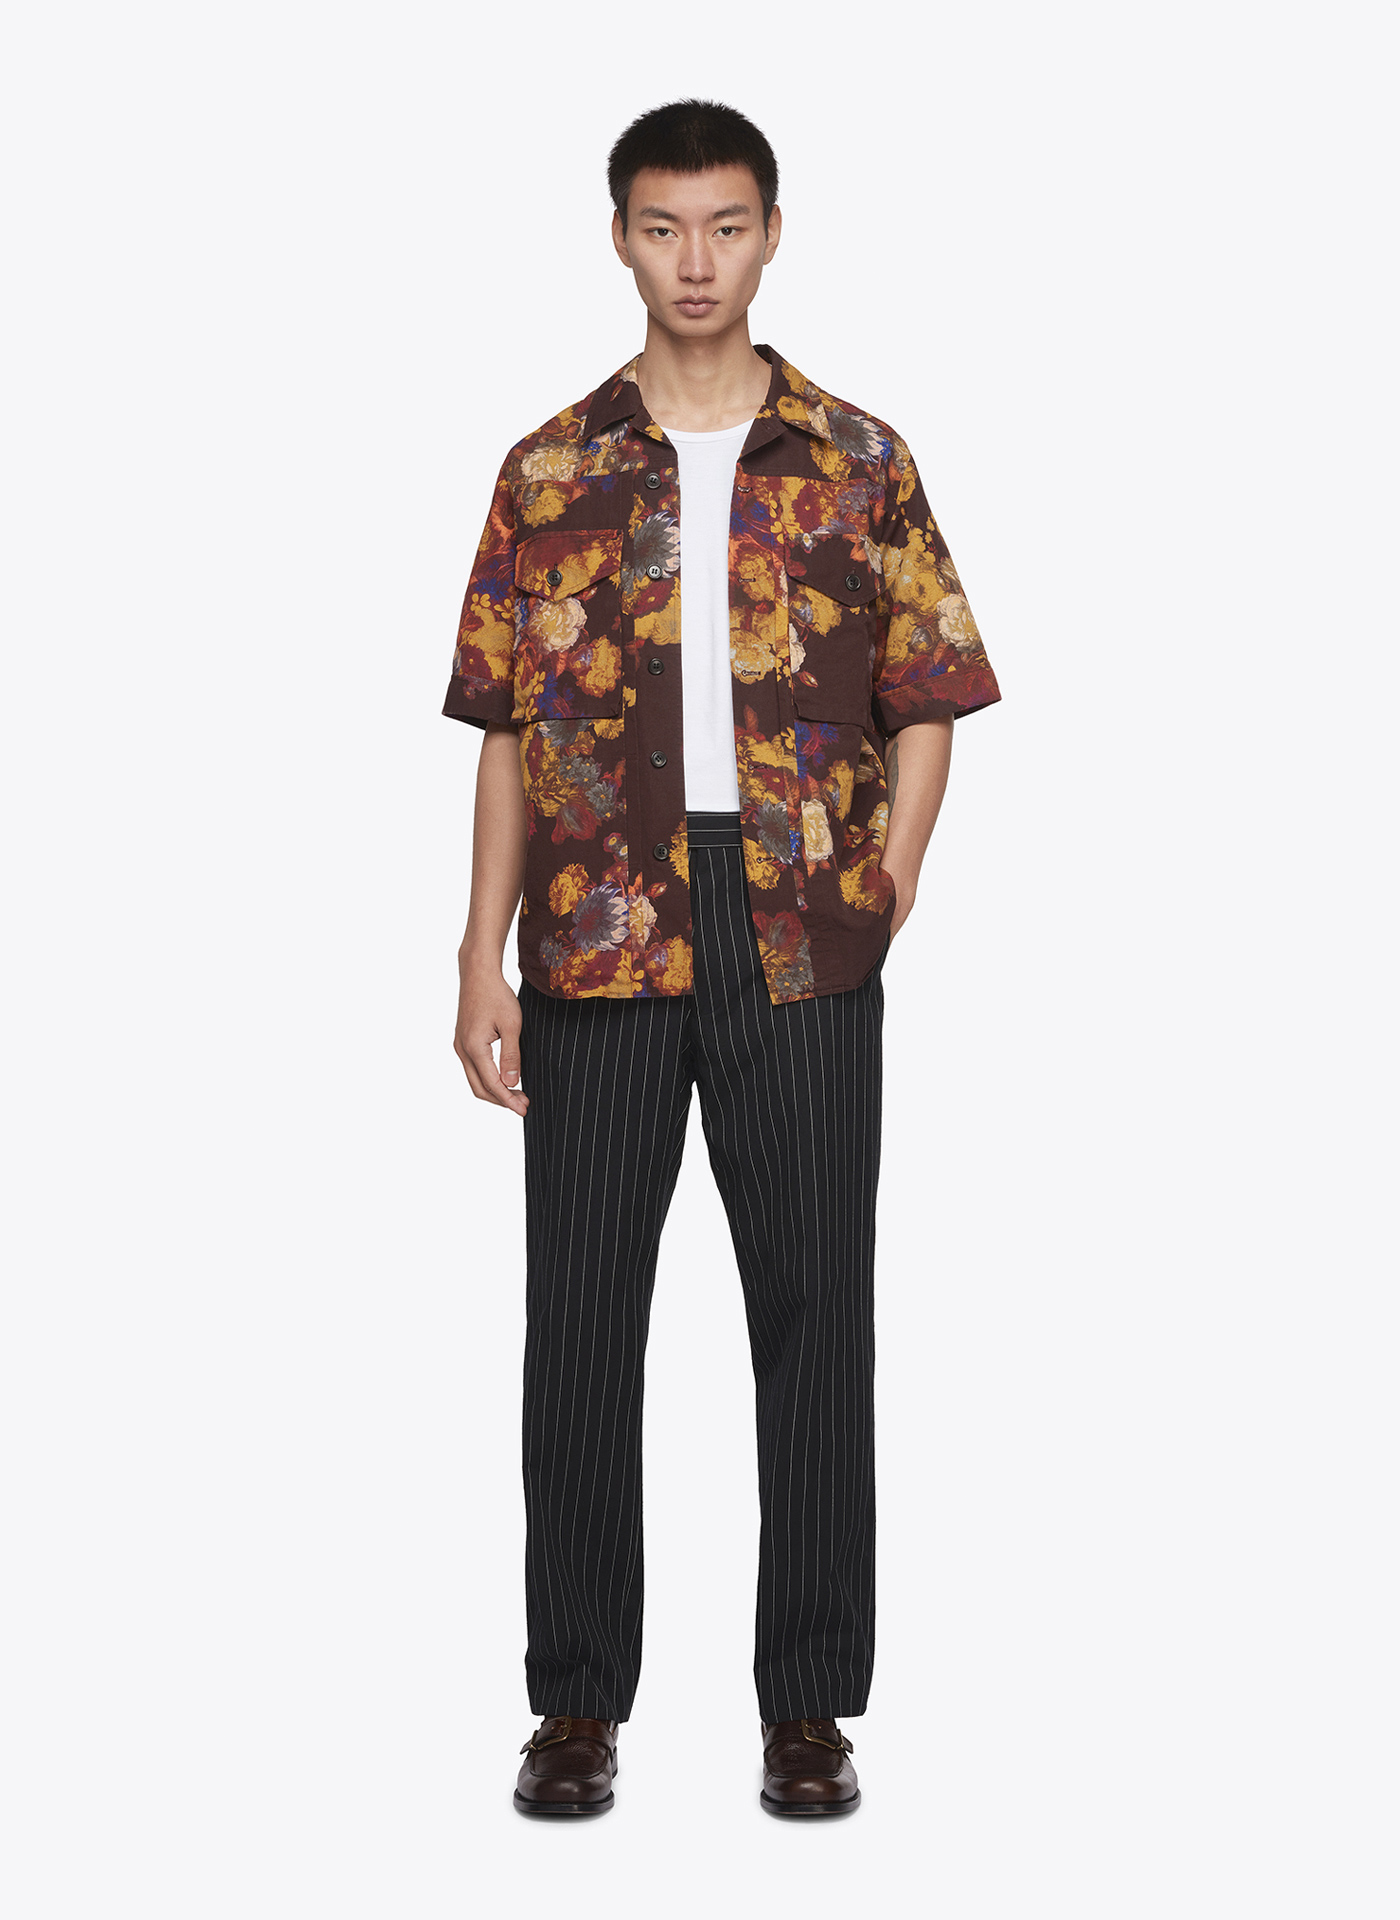 menswear model wearing floral shirt and black trousers